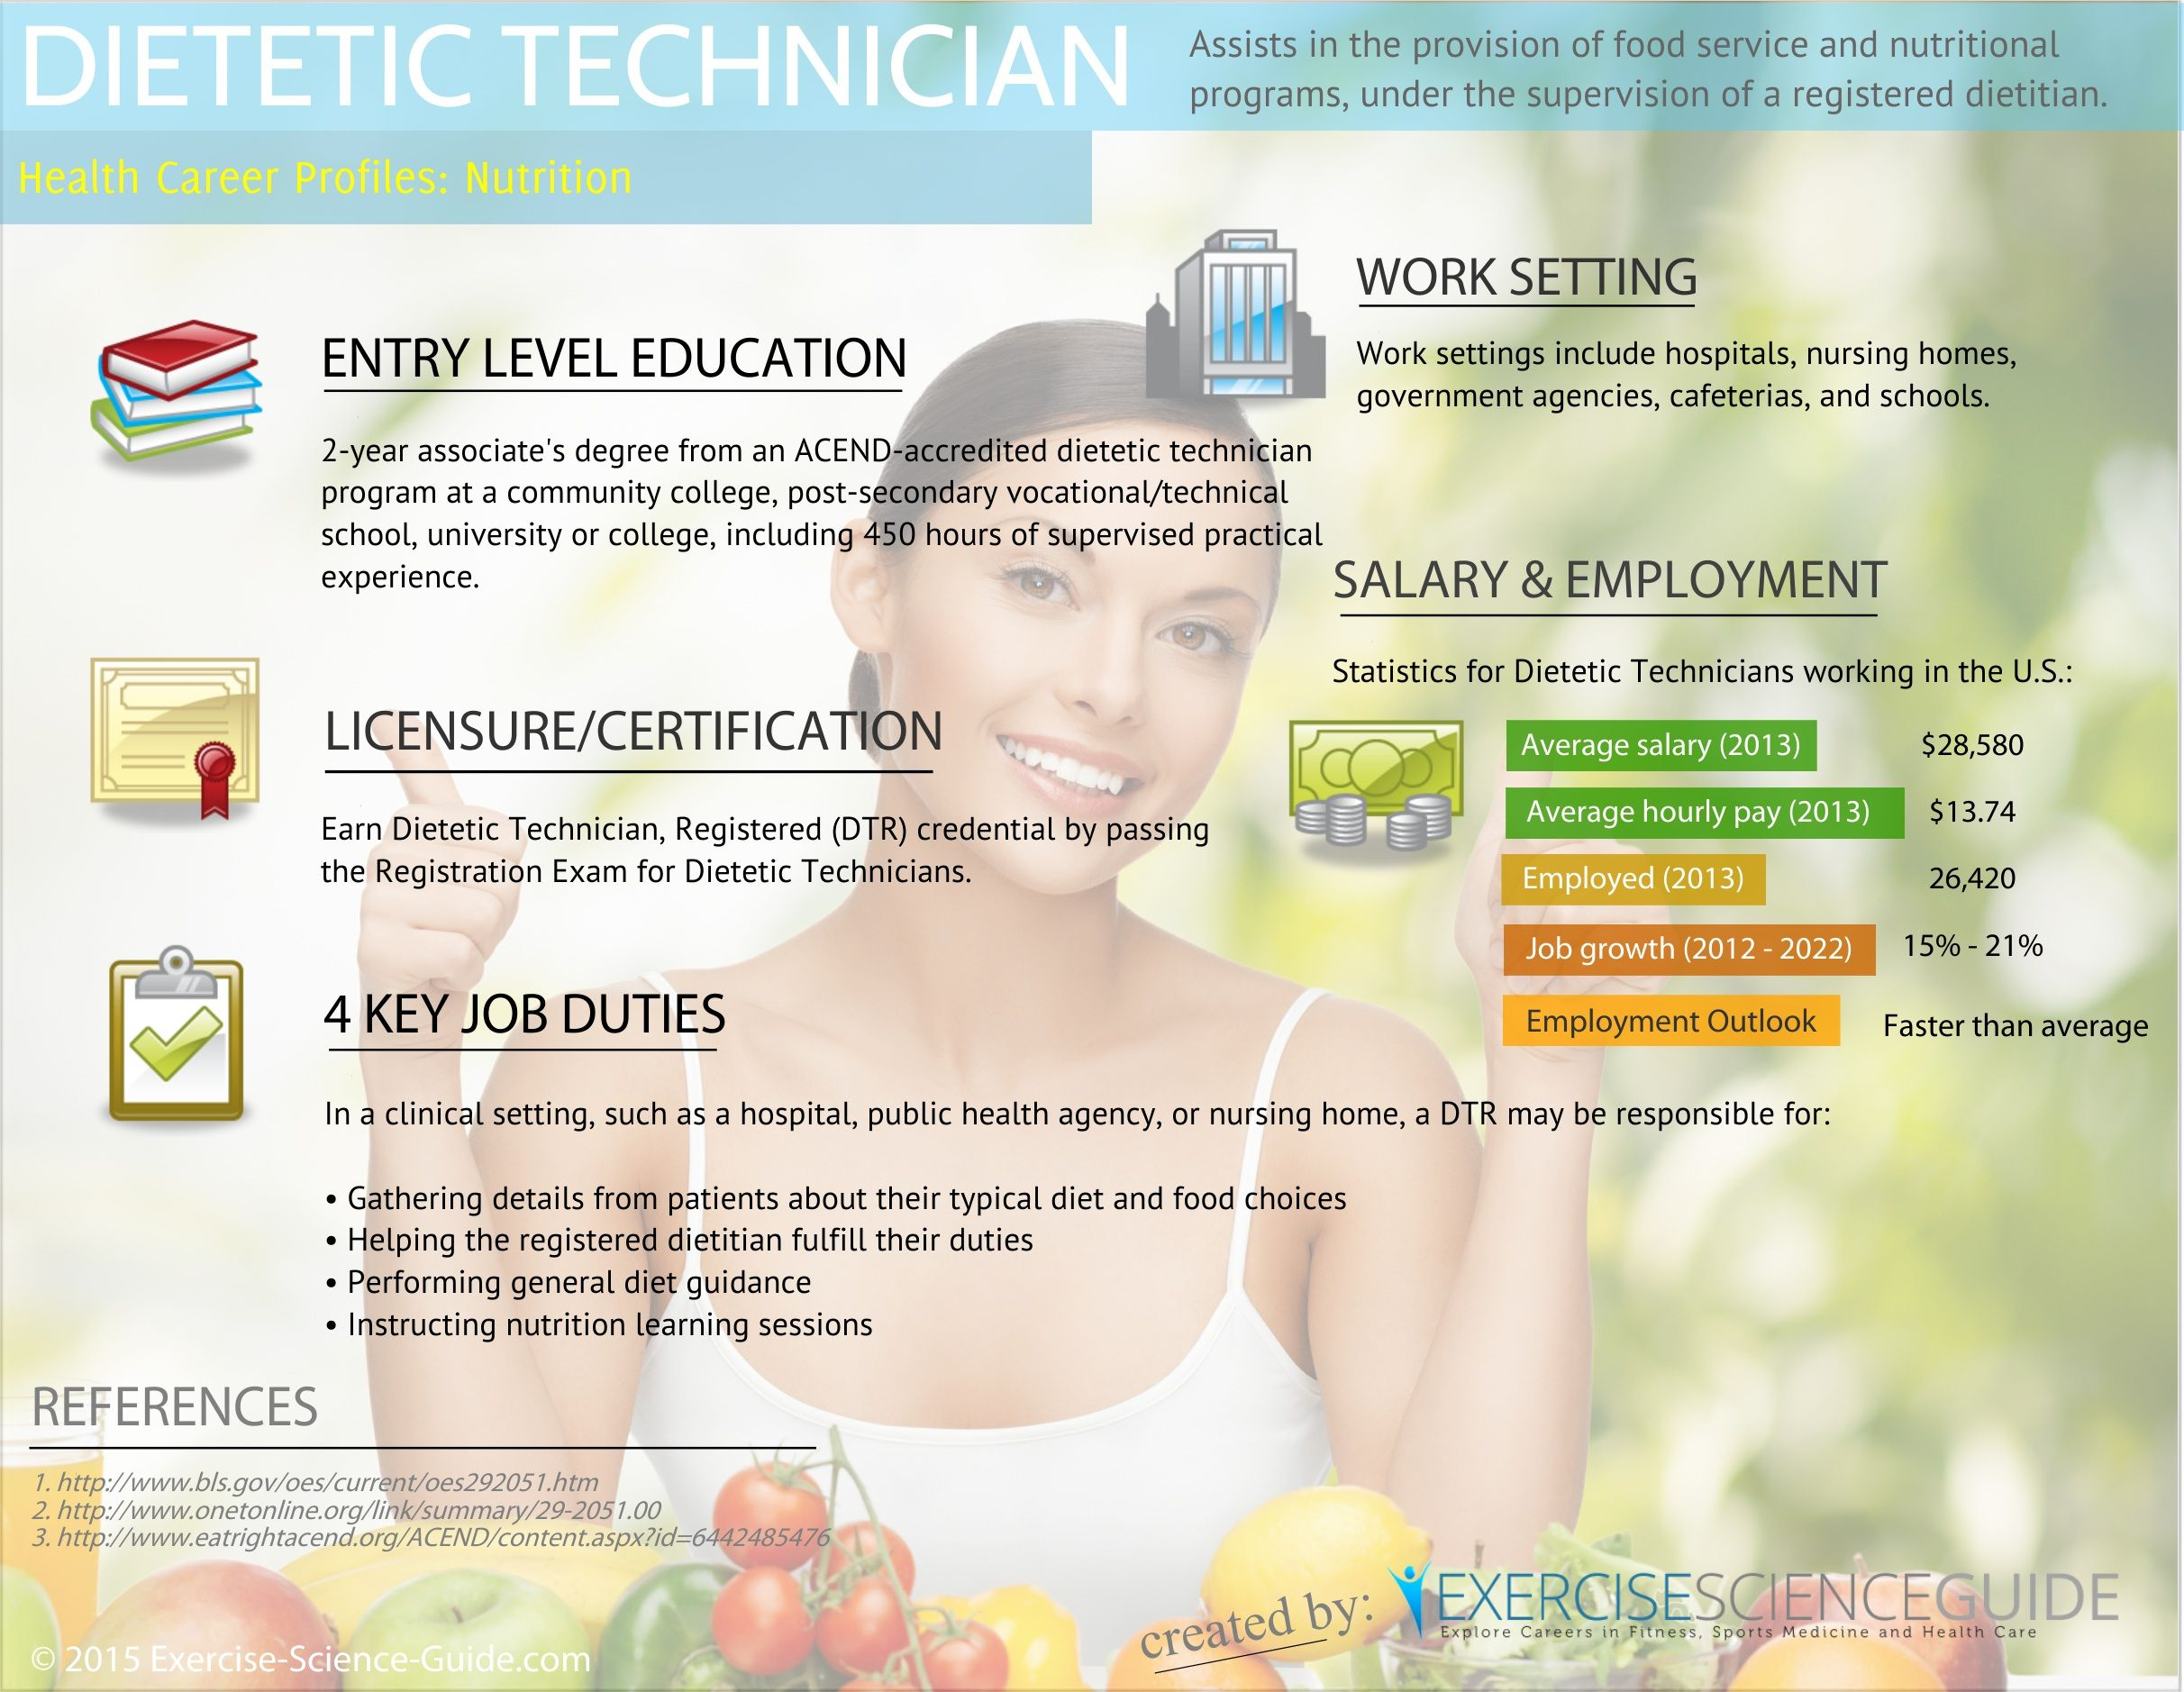 Dietetic Technician Dtr Education Requirements Employment And